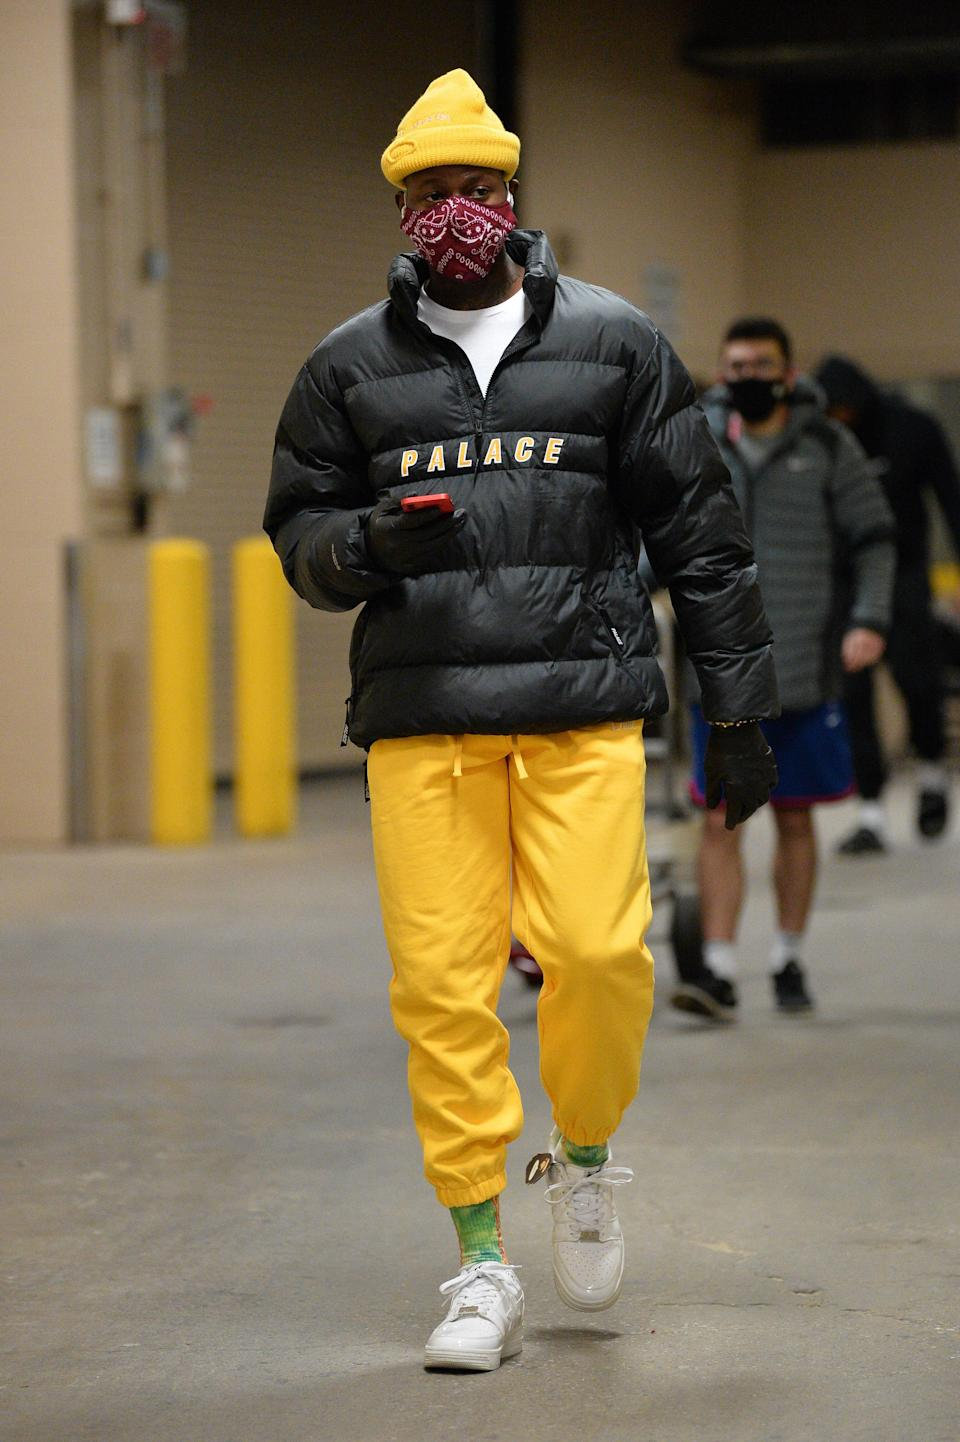 Terry Rozier of the Charlotte Hornets arrives to a game against the Philadelphia 76ers in Philadelphia, January 2, 2021.